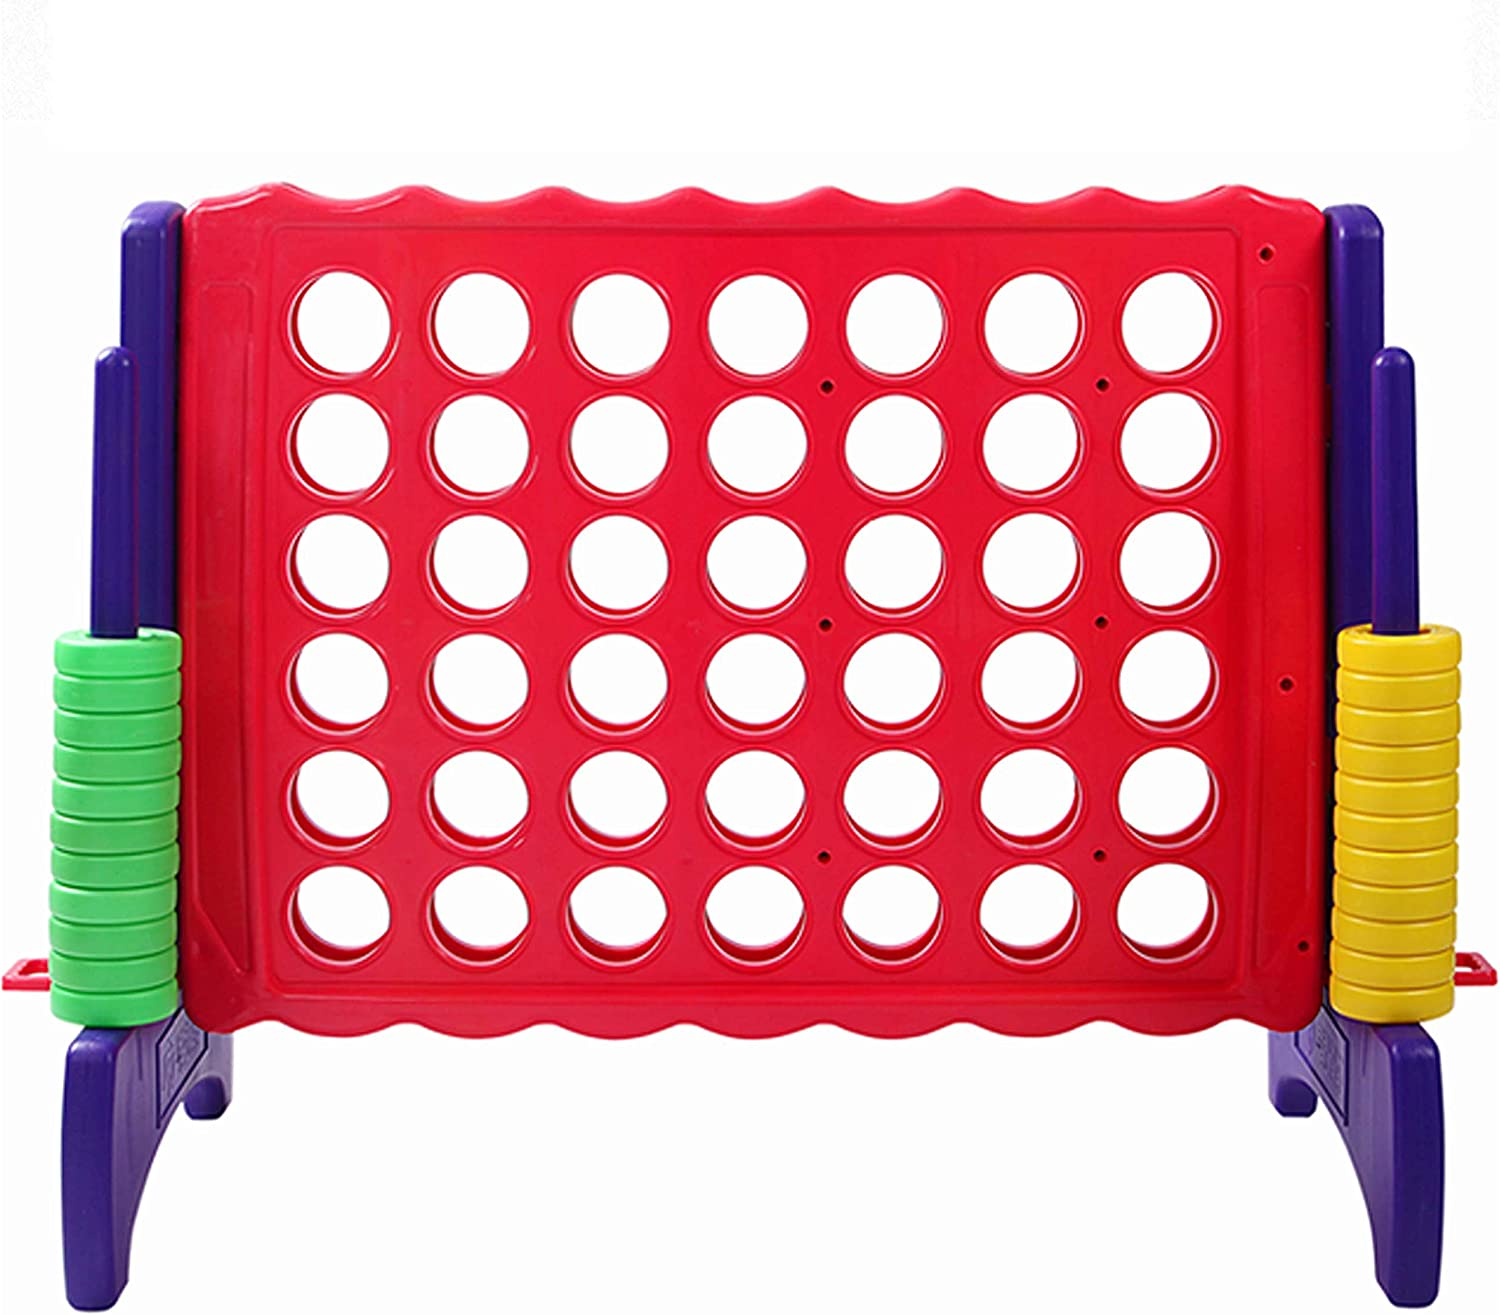 Giant 4 in A Row, 4 to Score - Premium Plastic Four Connect Game JUMBO 4 Foot Width or JUNIOR 3 Foot Width Set with 44 Rings by Rally & Roar – Oversized Fun Family, Kids Indoor/Outdoor Games